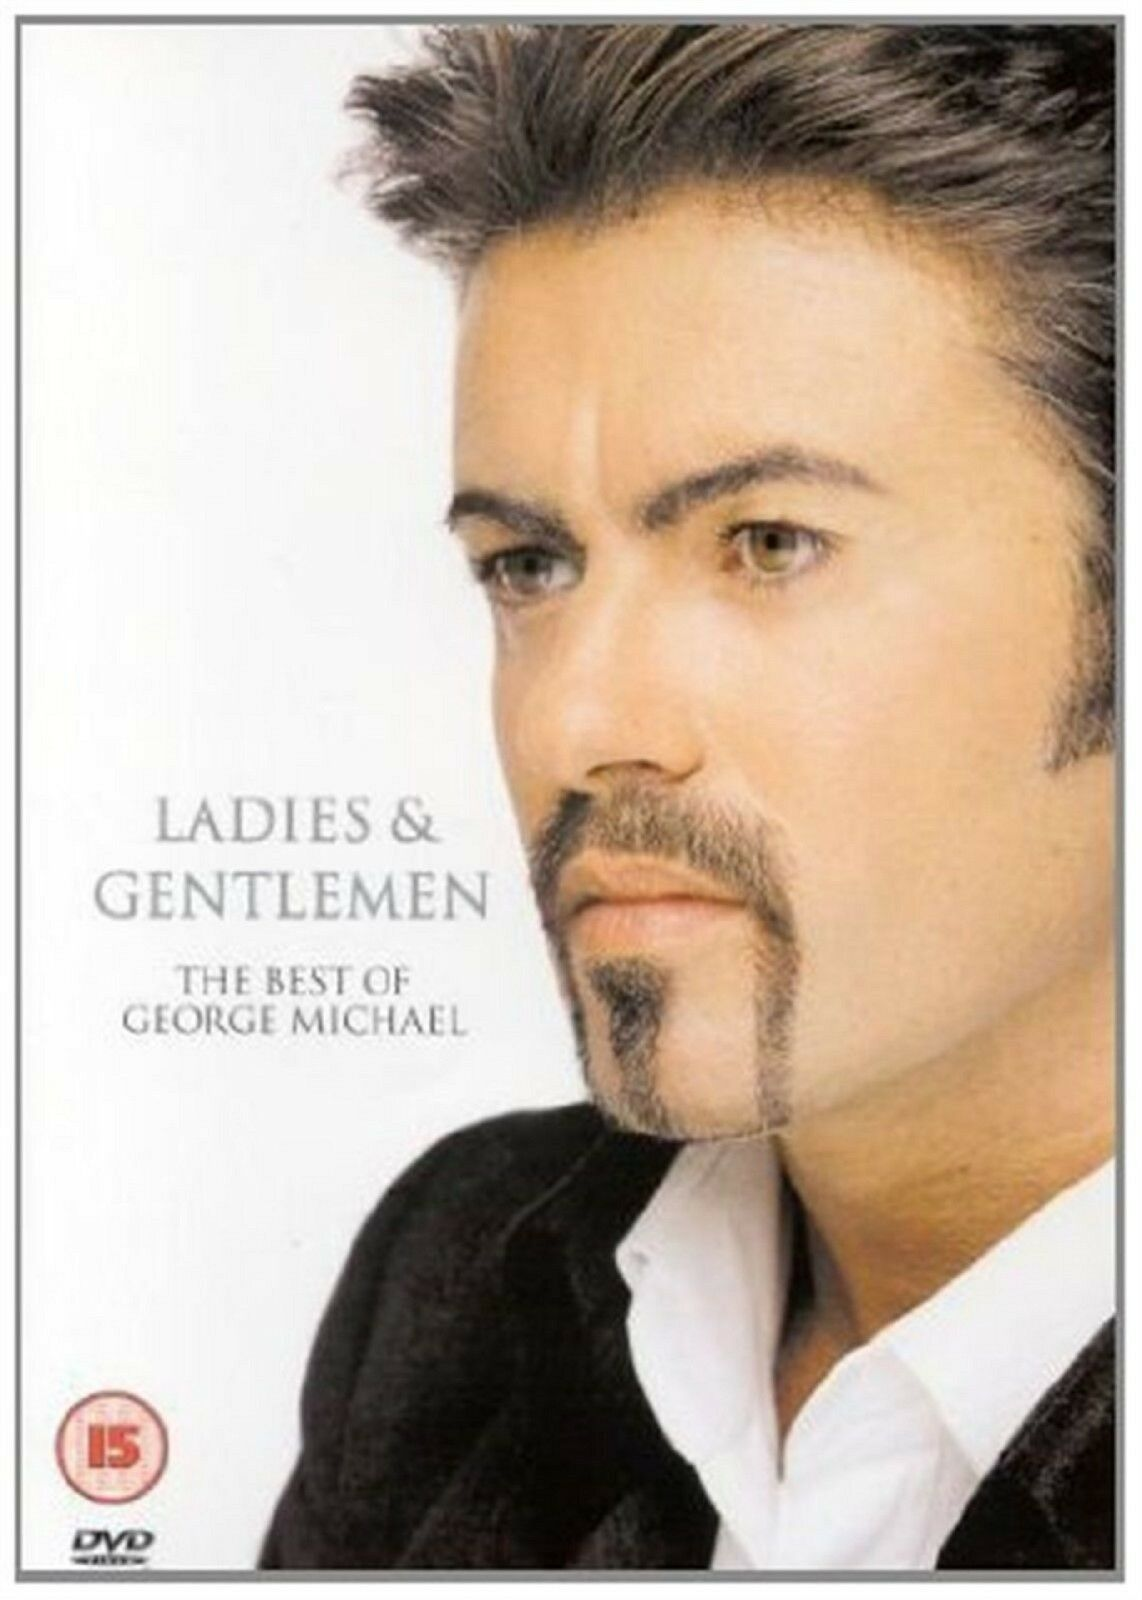 George Michael: Ladies and Gentlemen - The Best Of - George Michael [DVD]